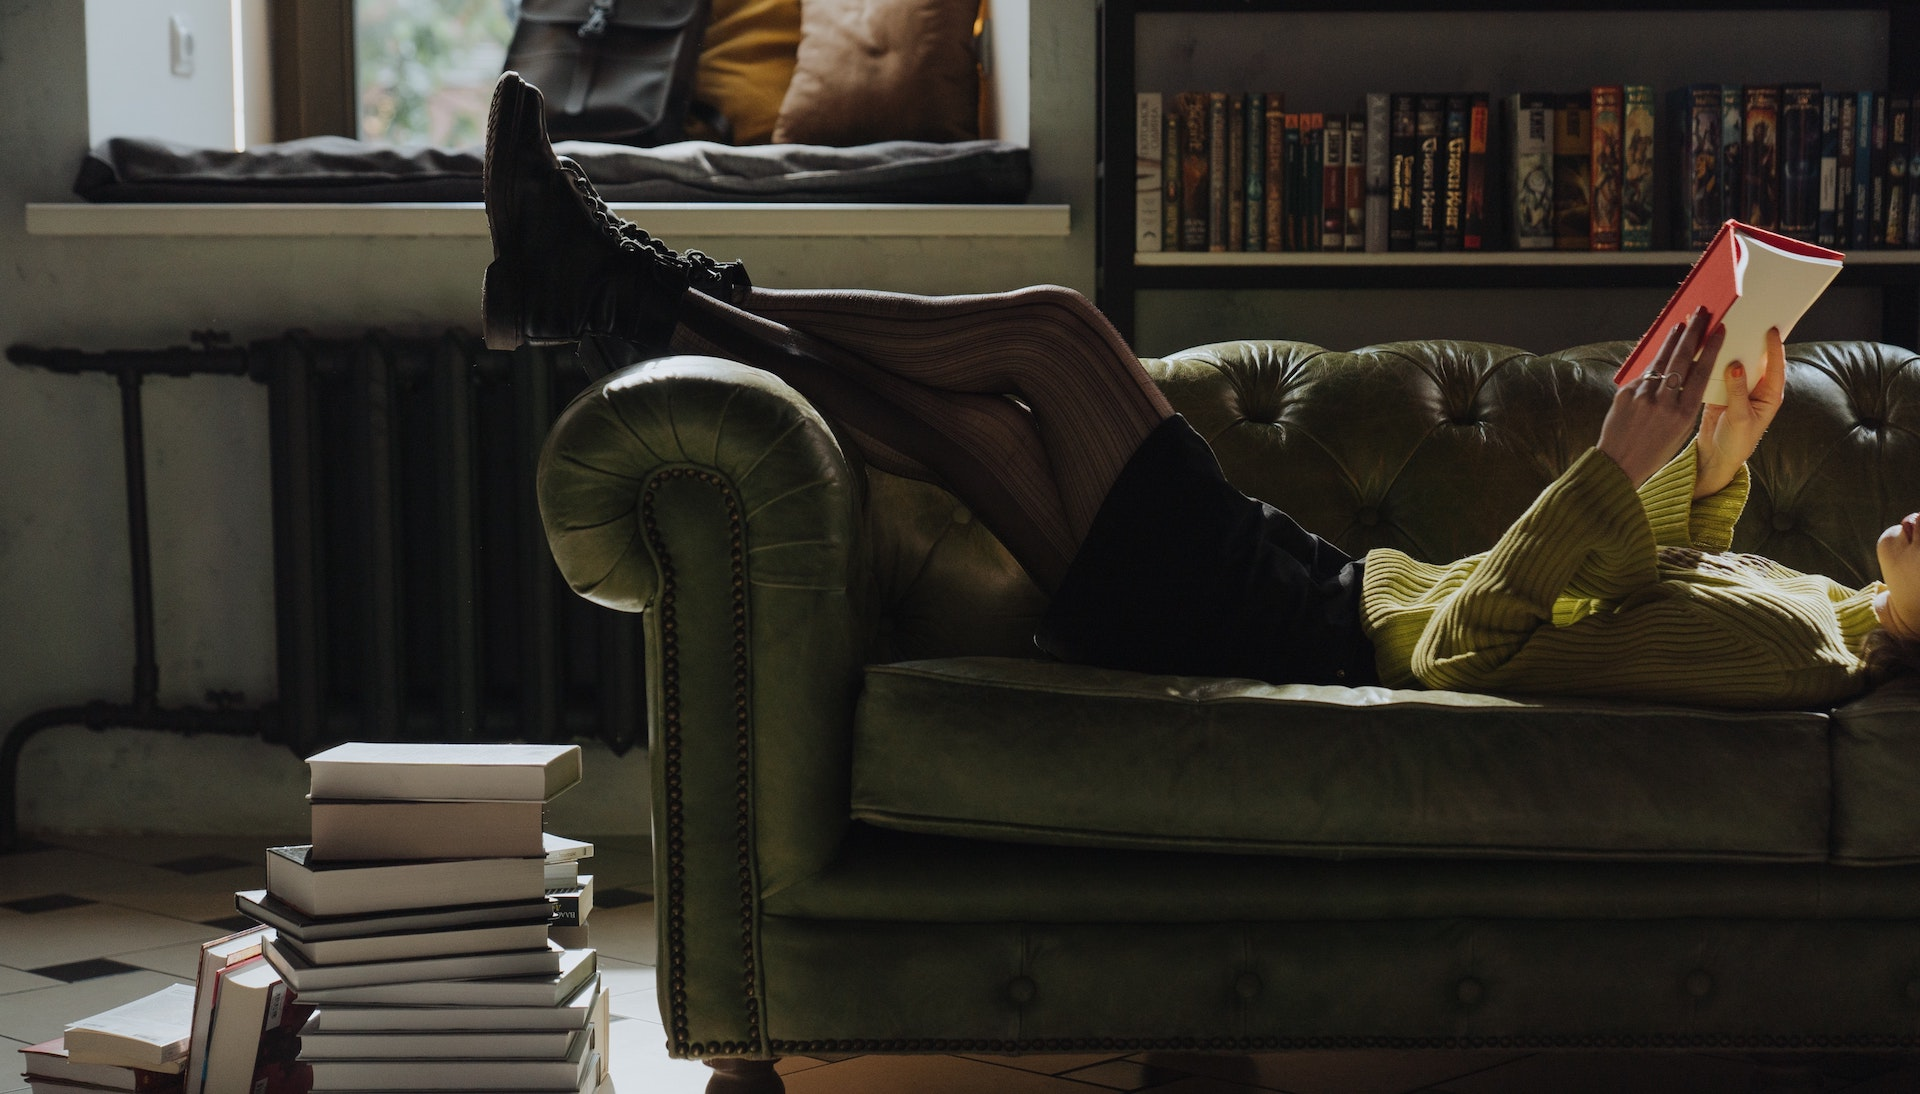 A woman reclines on a sofa reading a book.